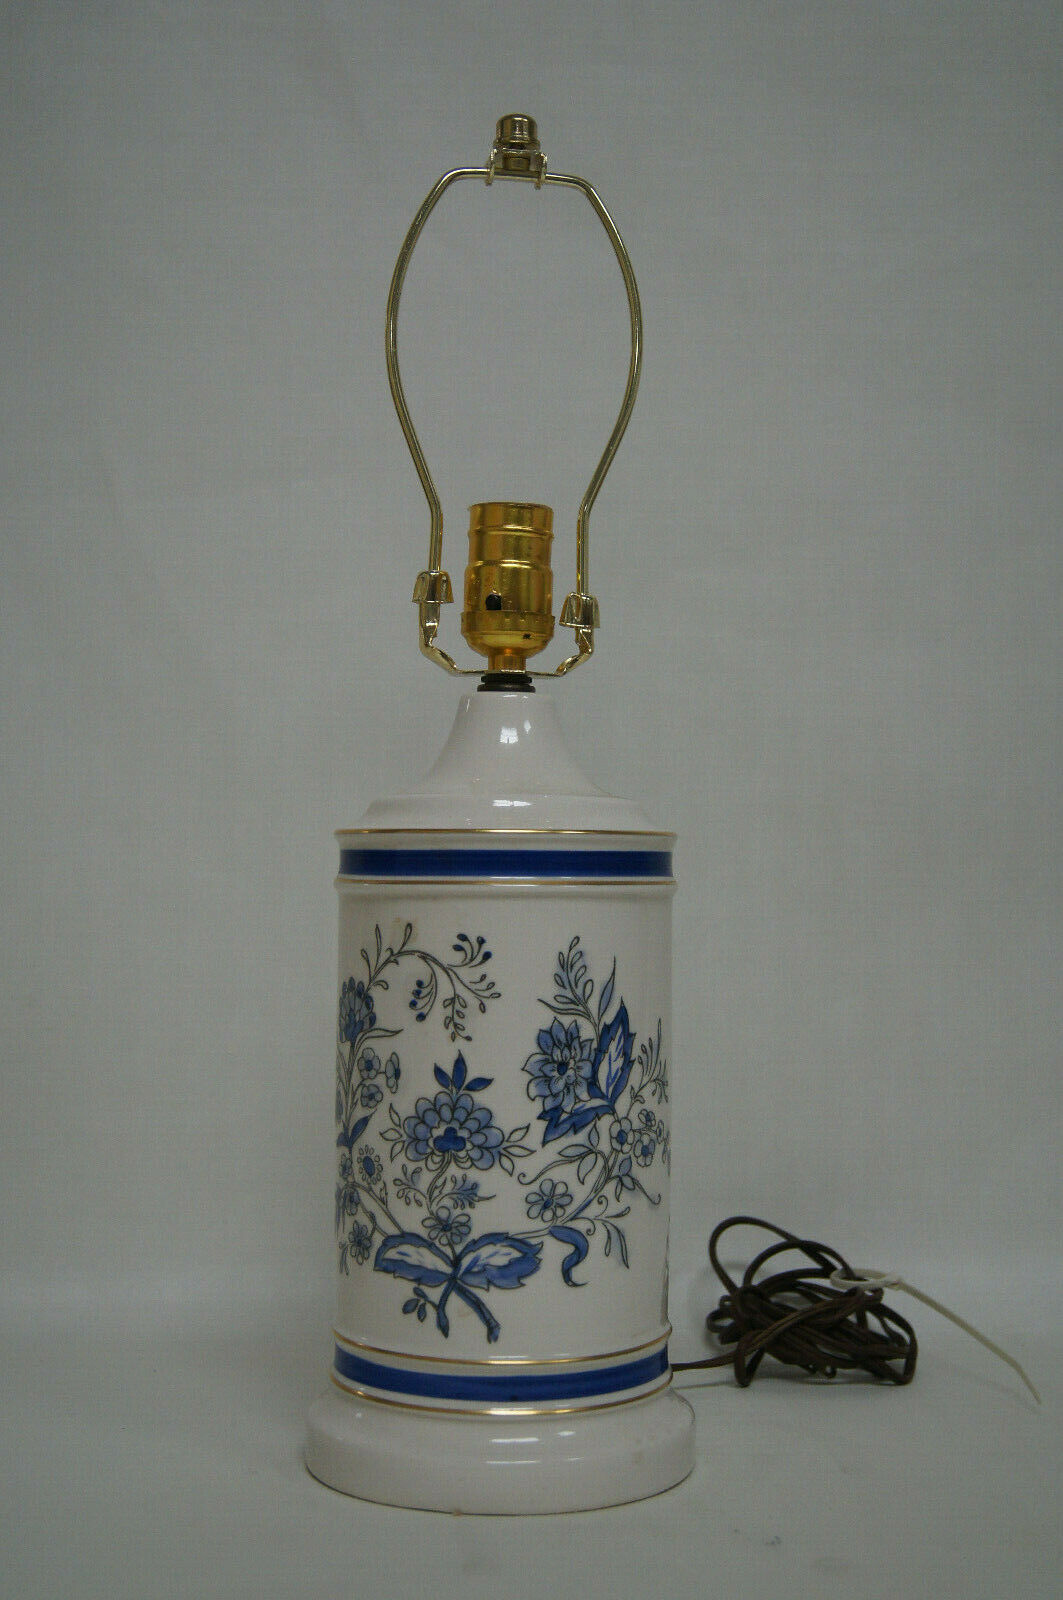 Beautiful Blau and Weiß porcelain table lamp with inlaid design